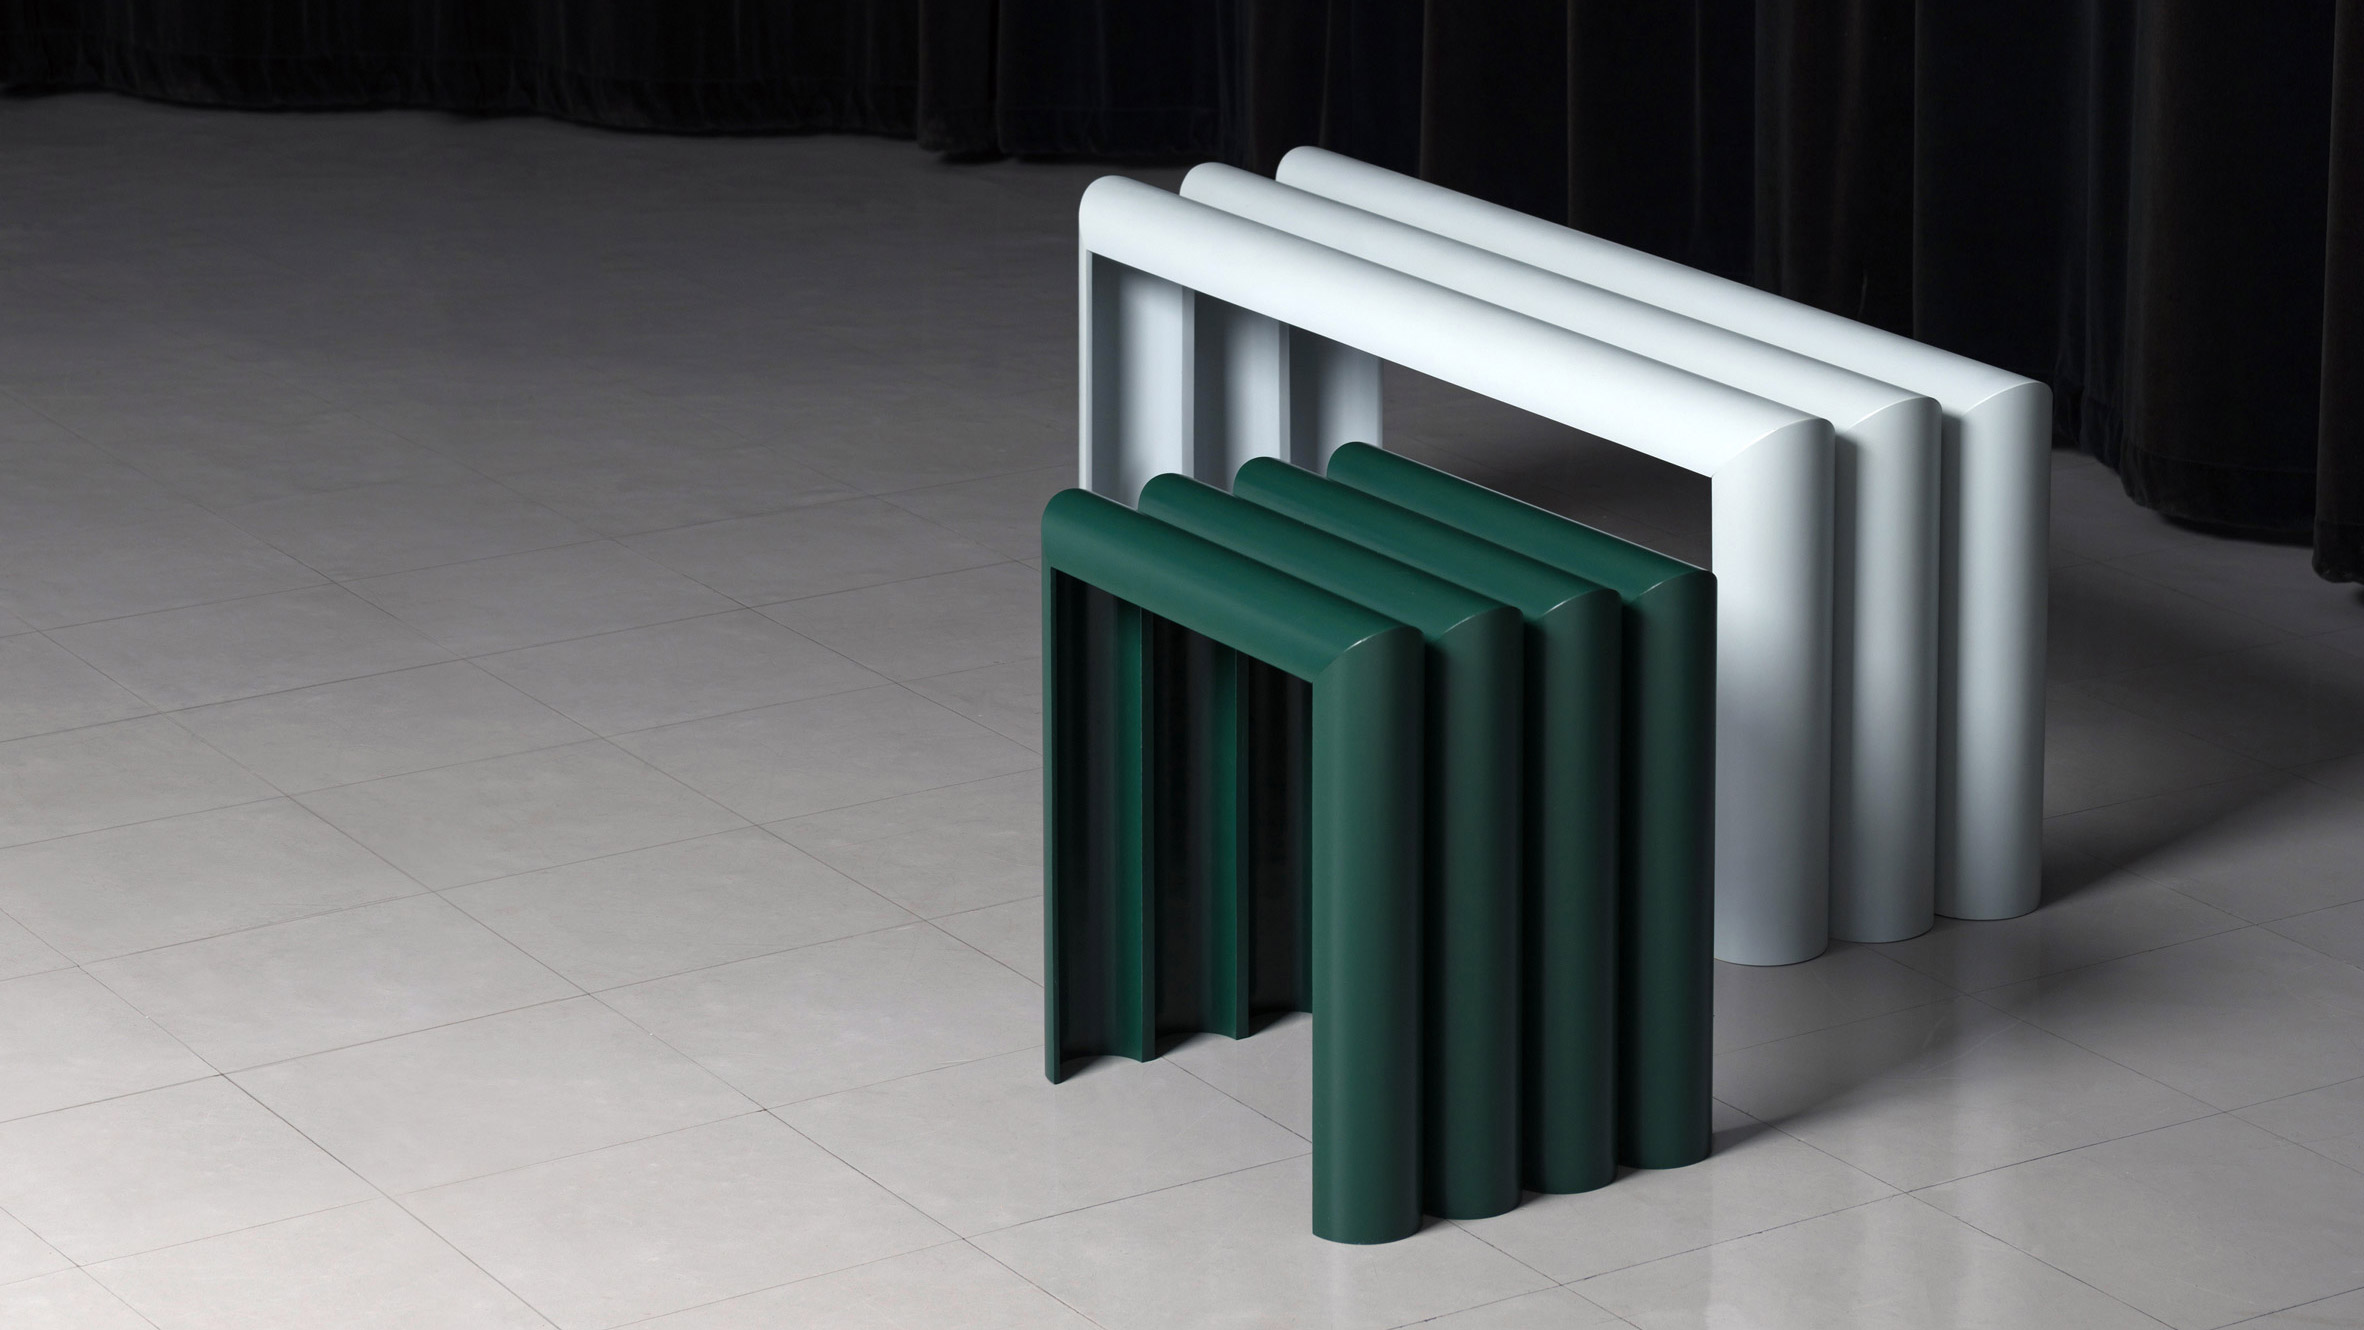 Phan Thao Dang transforms sewage pipes into graphical furniture items